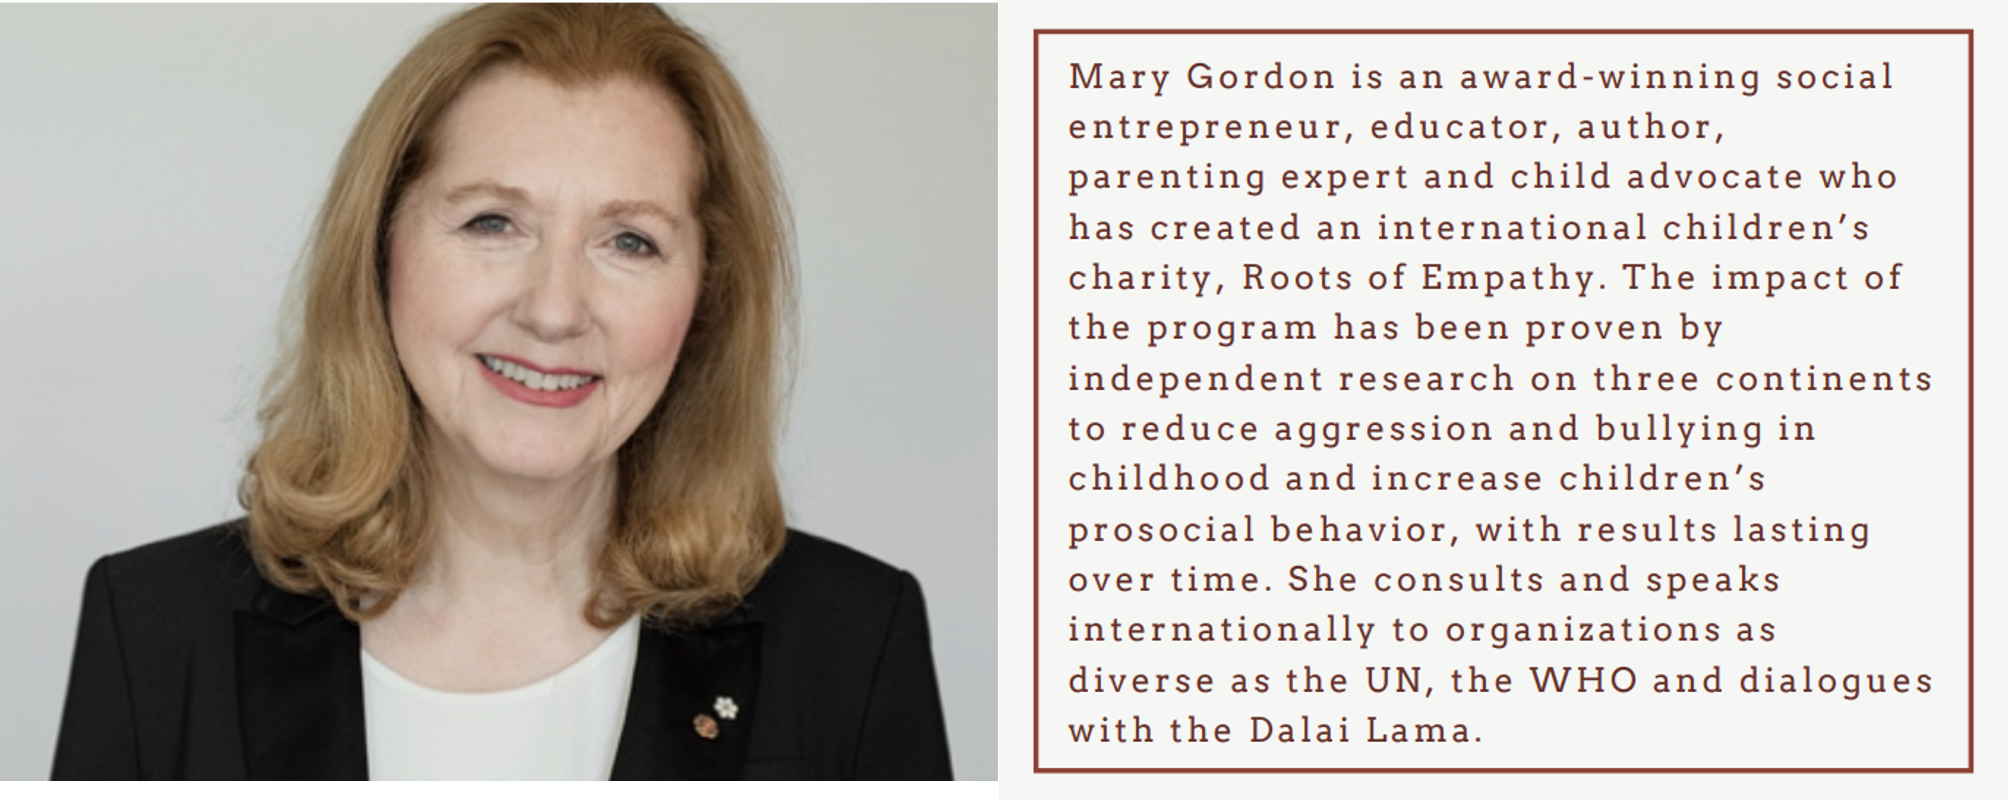 Mary Gordon, description text guest